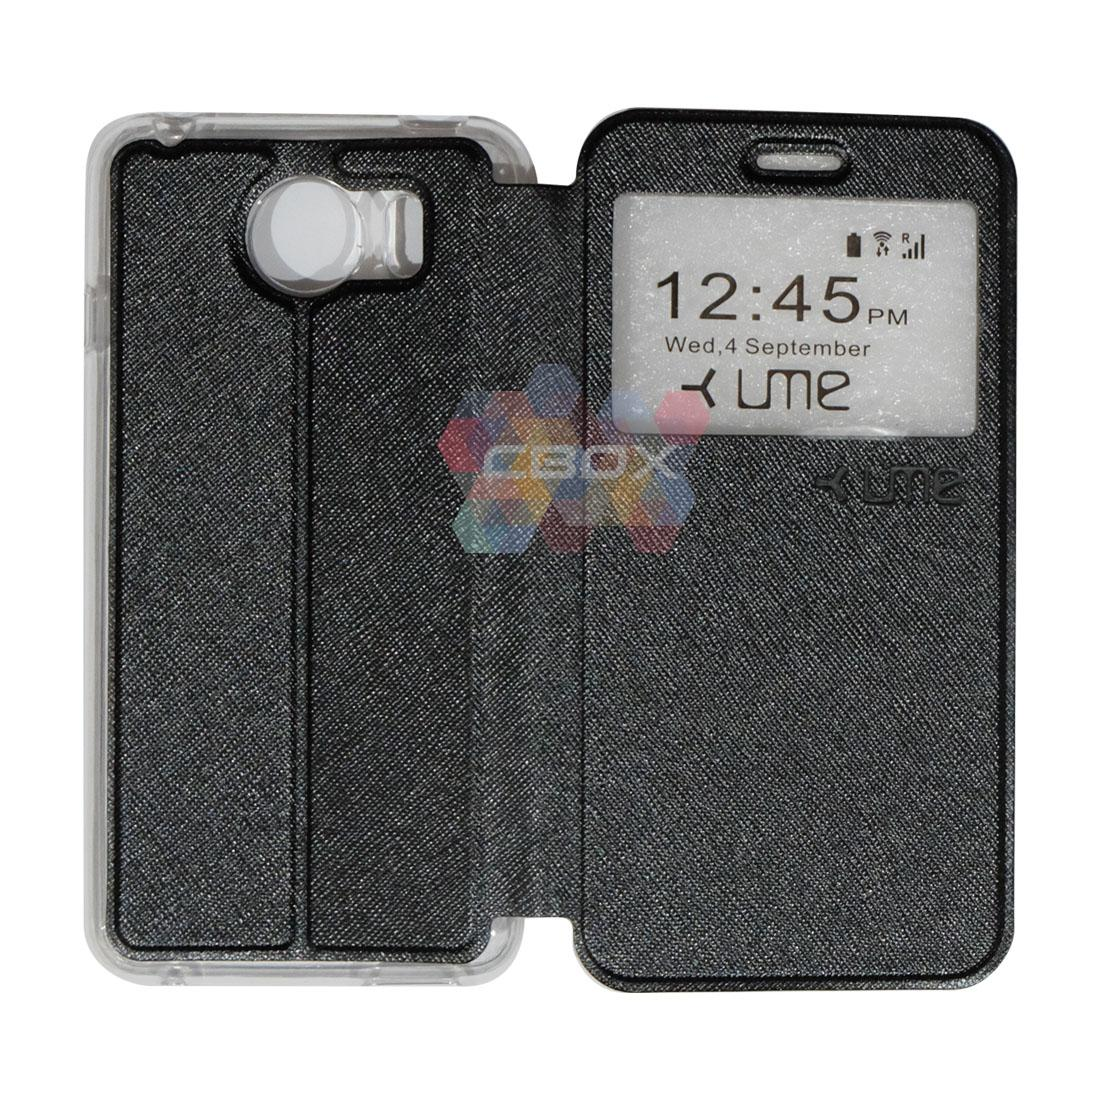 Ume Flipshell Leather Phone Himax M1 Sarung Case / Flipshell Ume Himax M1 / Flipcover Ume Himax M1 / Leather Case Ume Himax M1 / Sarung HP Himax M1 / Flipshell Himax M1 / Flipcover Himax M1 / Casing Himax M1 - Hitam